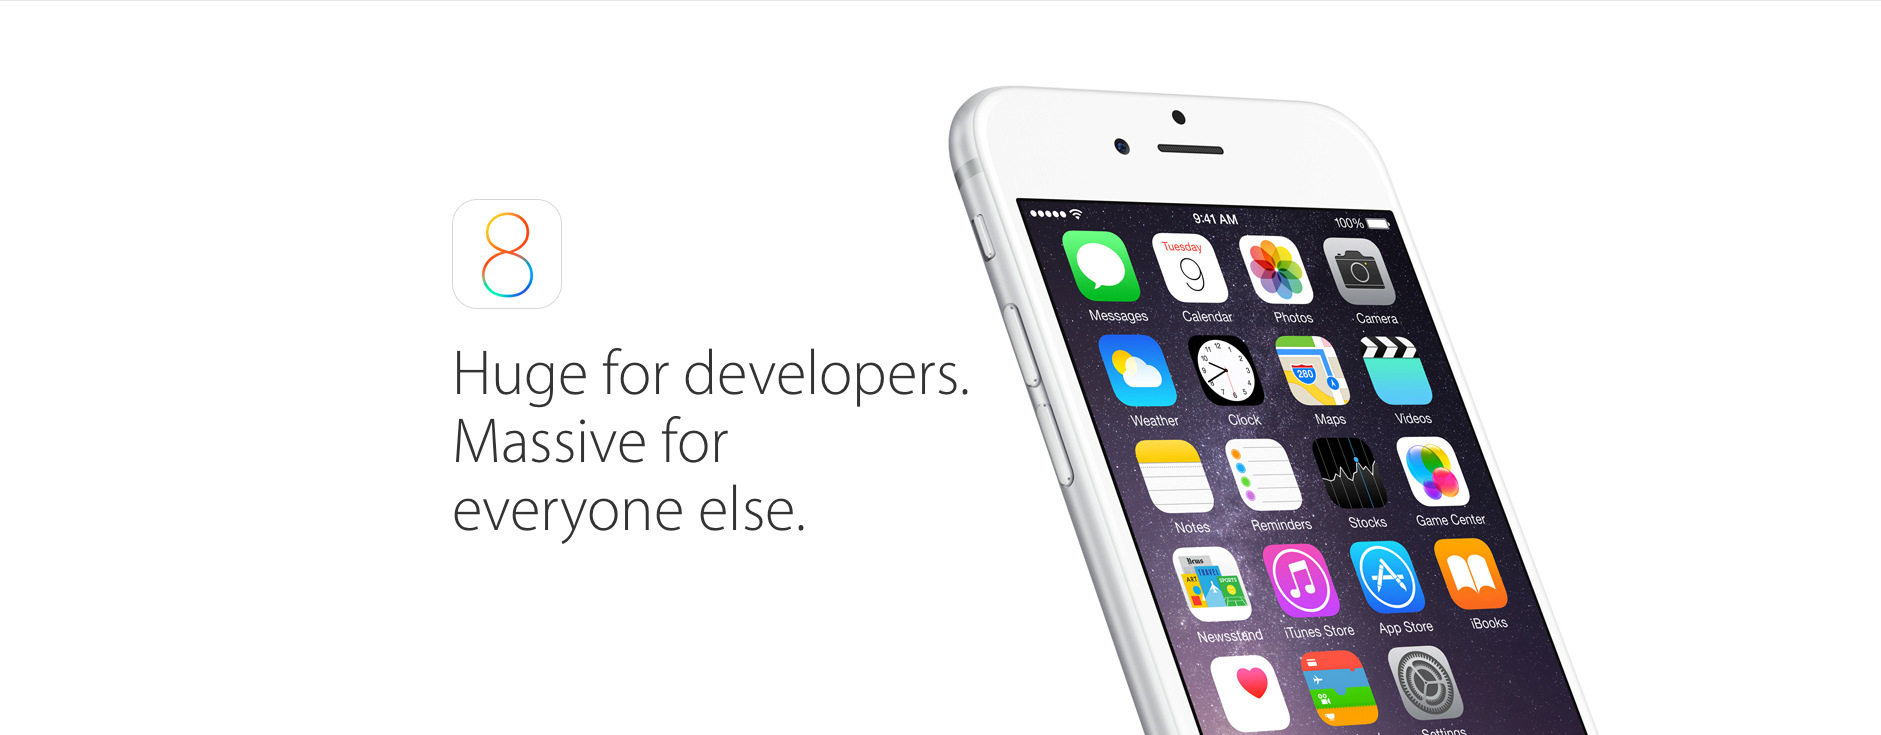 Apple seeds iOS 8.4 beta 4 to registered developers, public testers